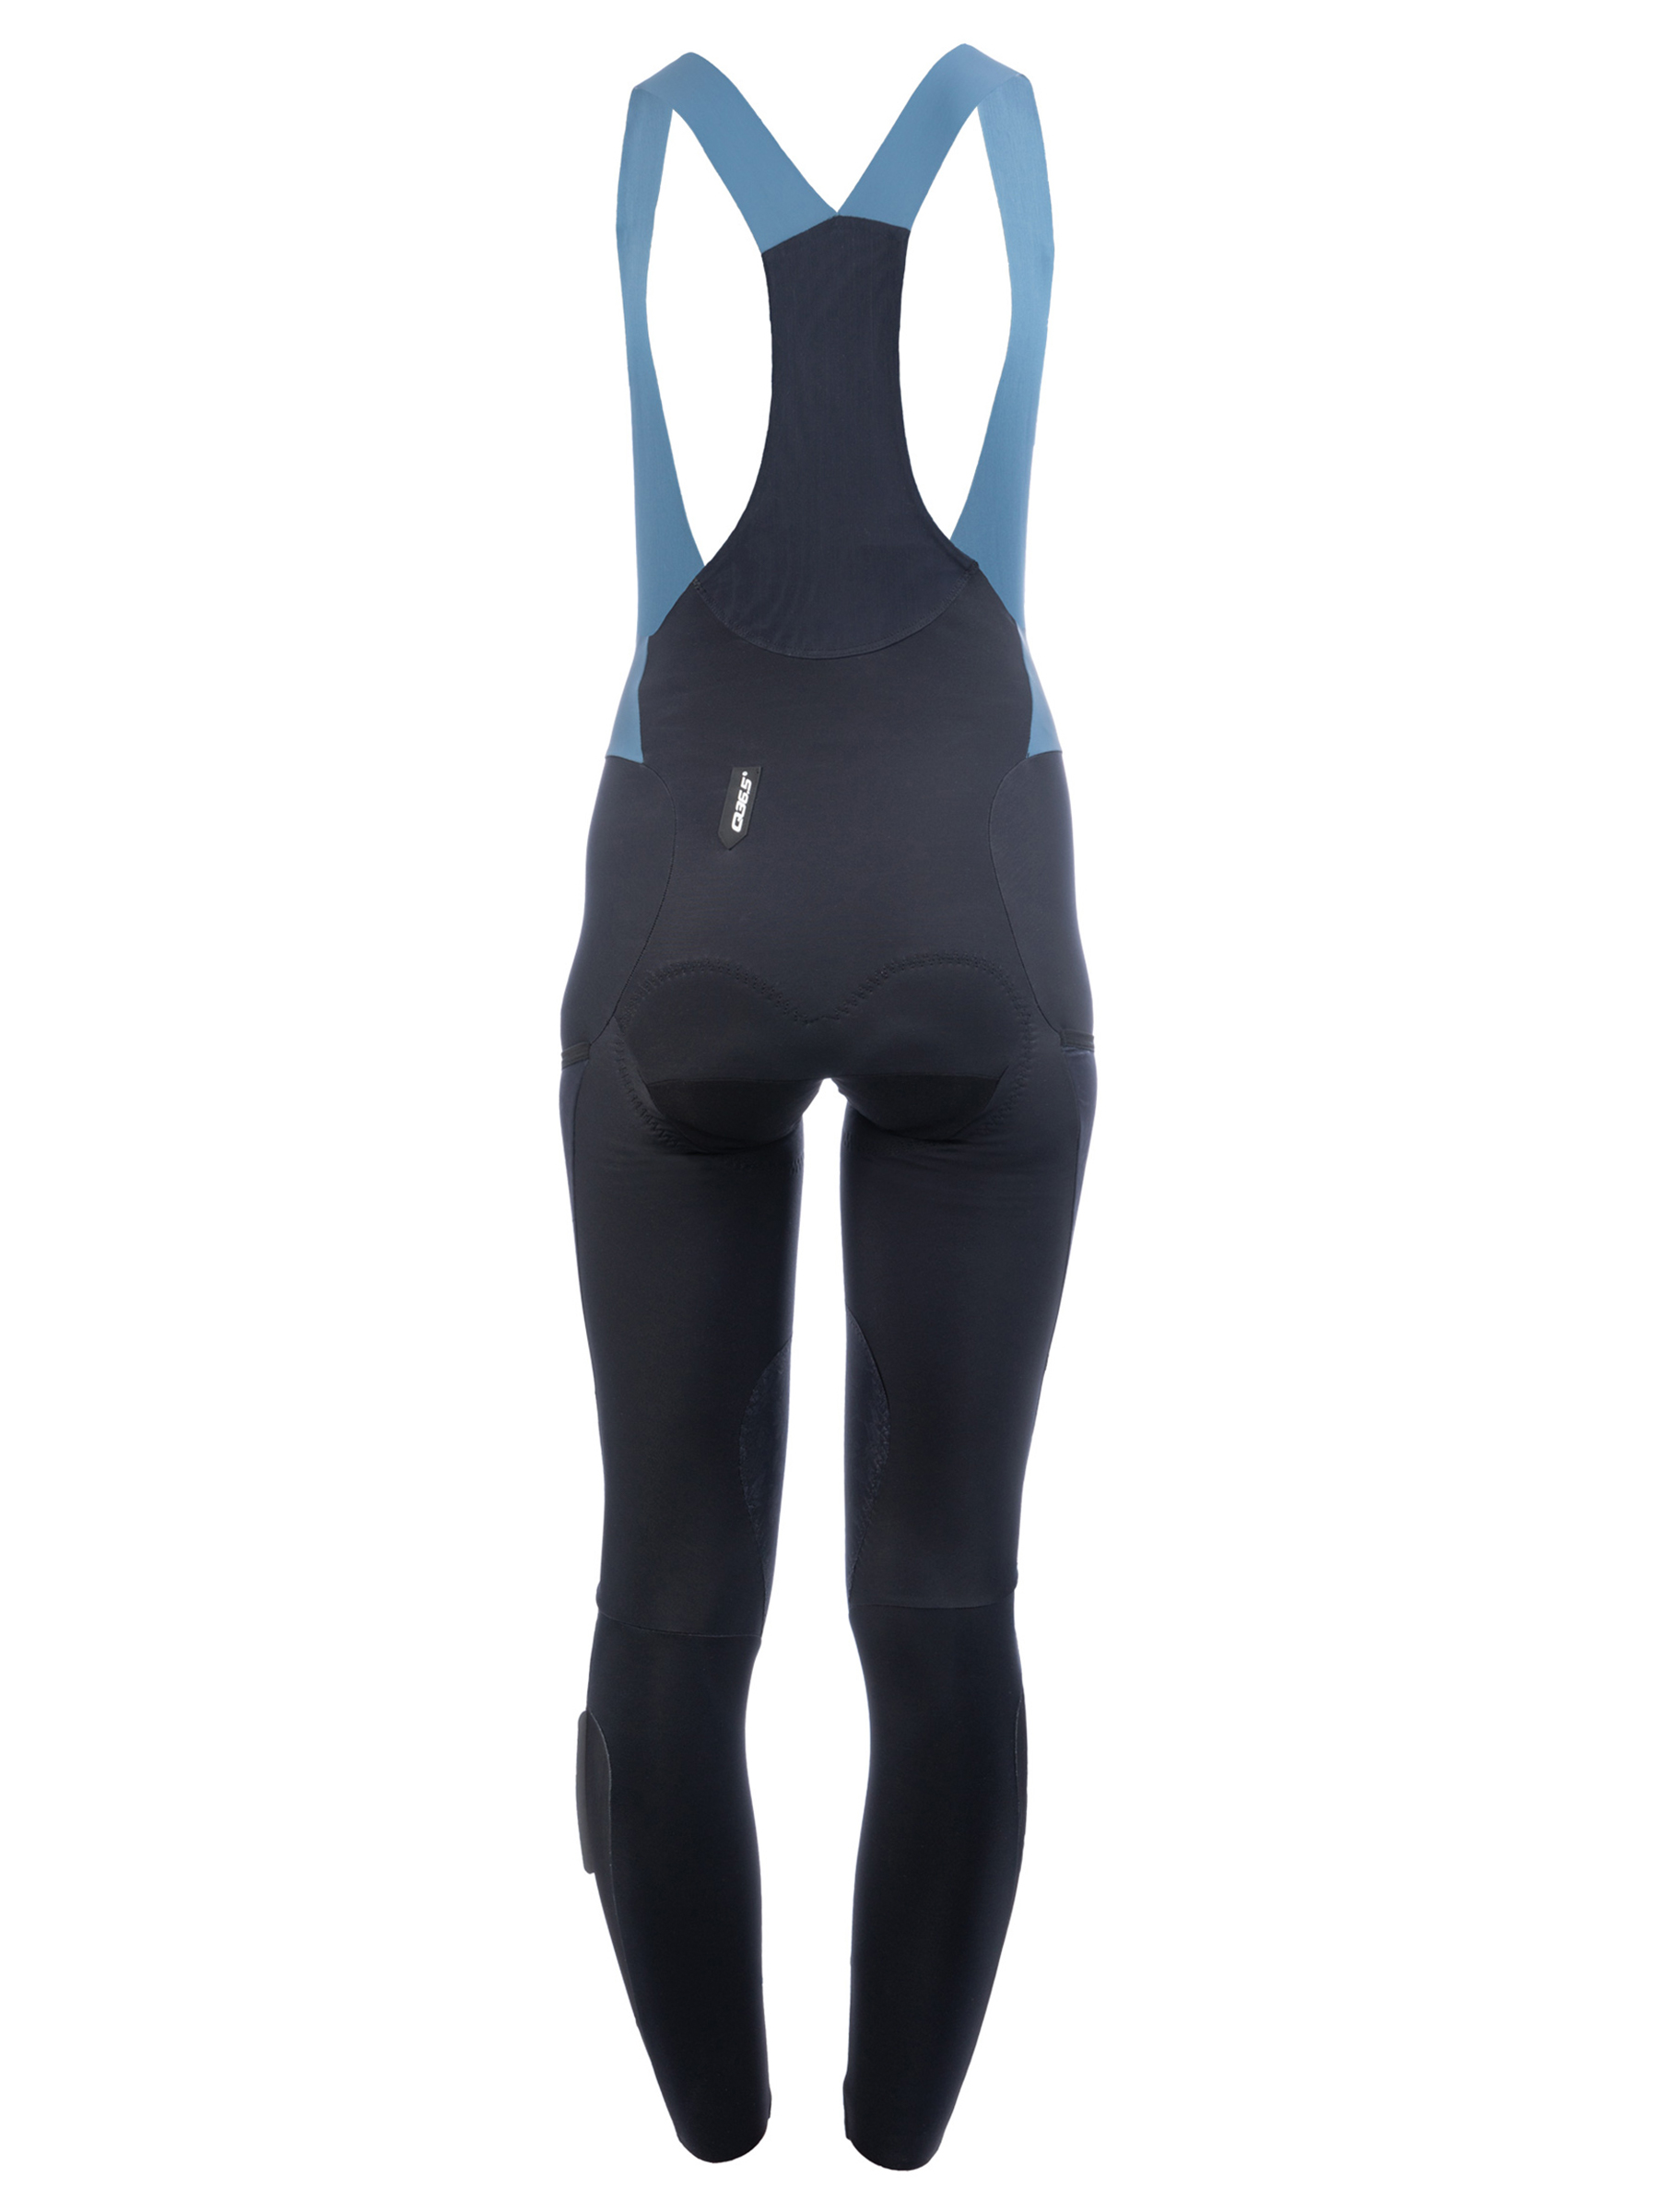 Lange Winter Trägerhose Adventure Lady in Schwarz